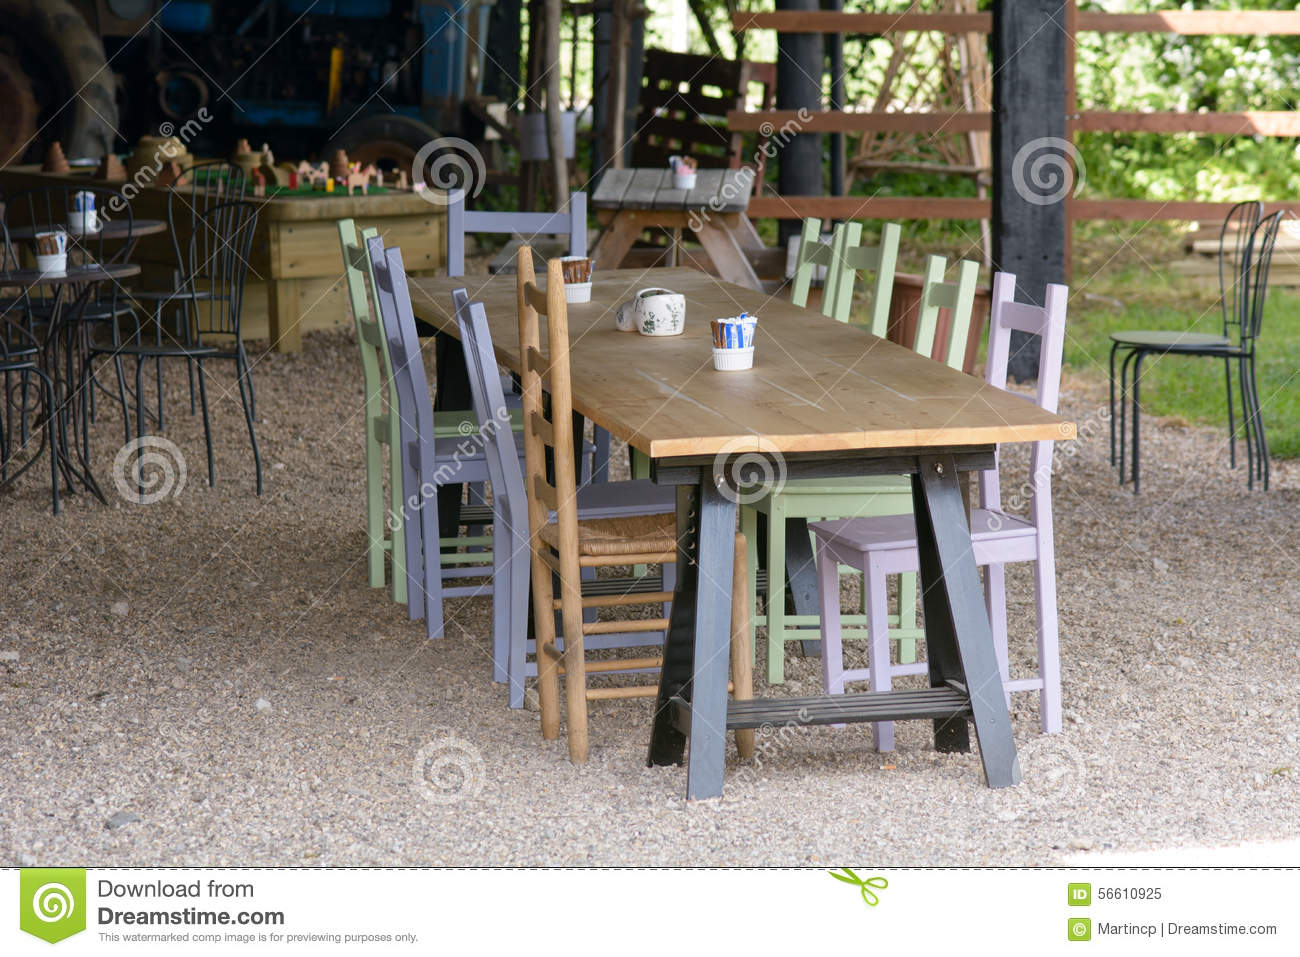 Longue Table En Bois Longue Table En Bois En Café Image Stock Image Du Wooden Table